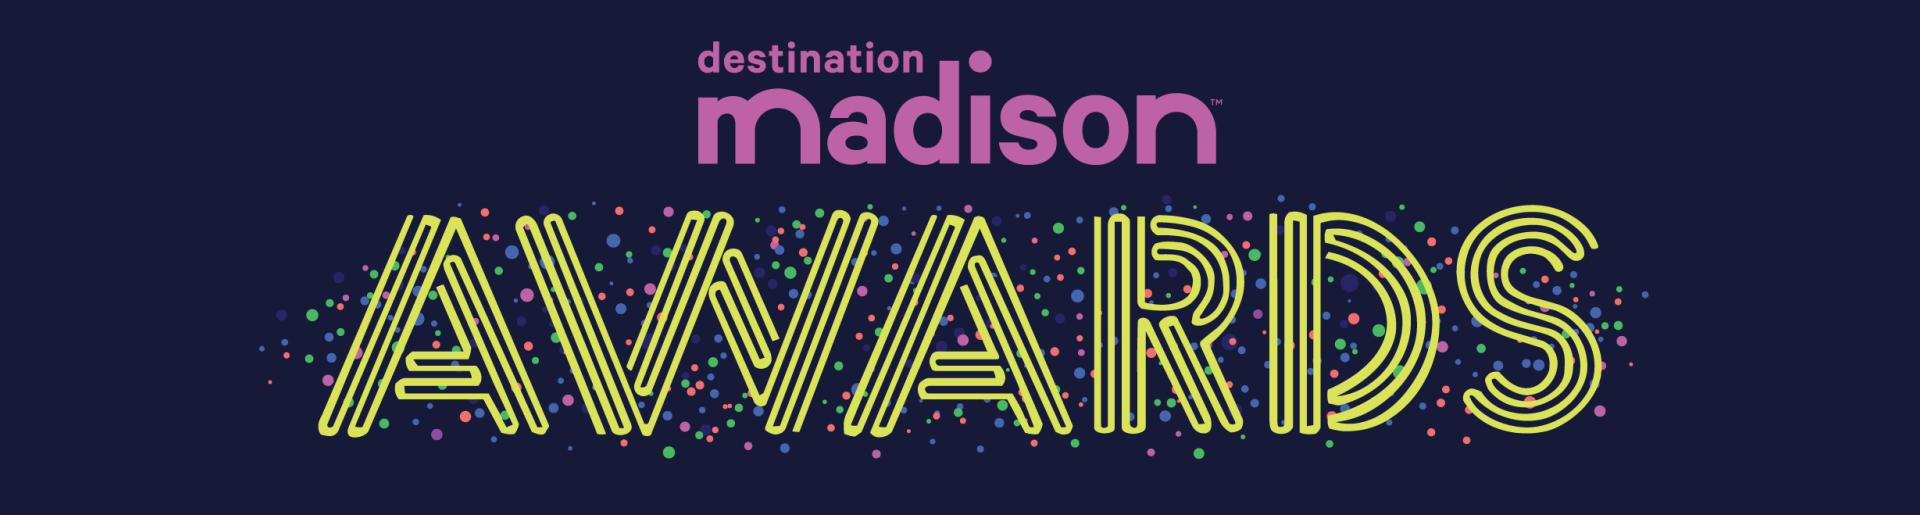 Destination Madison Awards 2019 Header